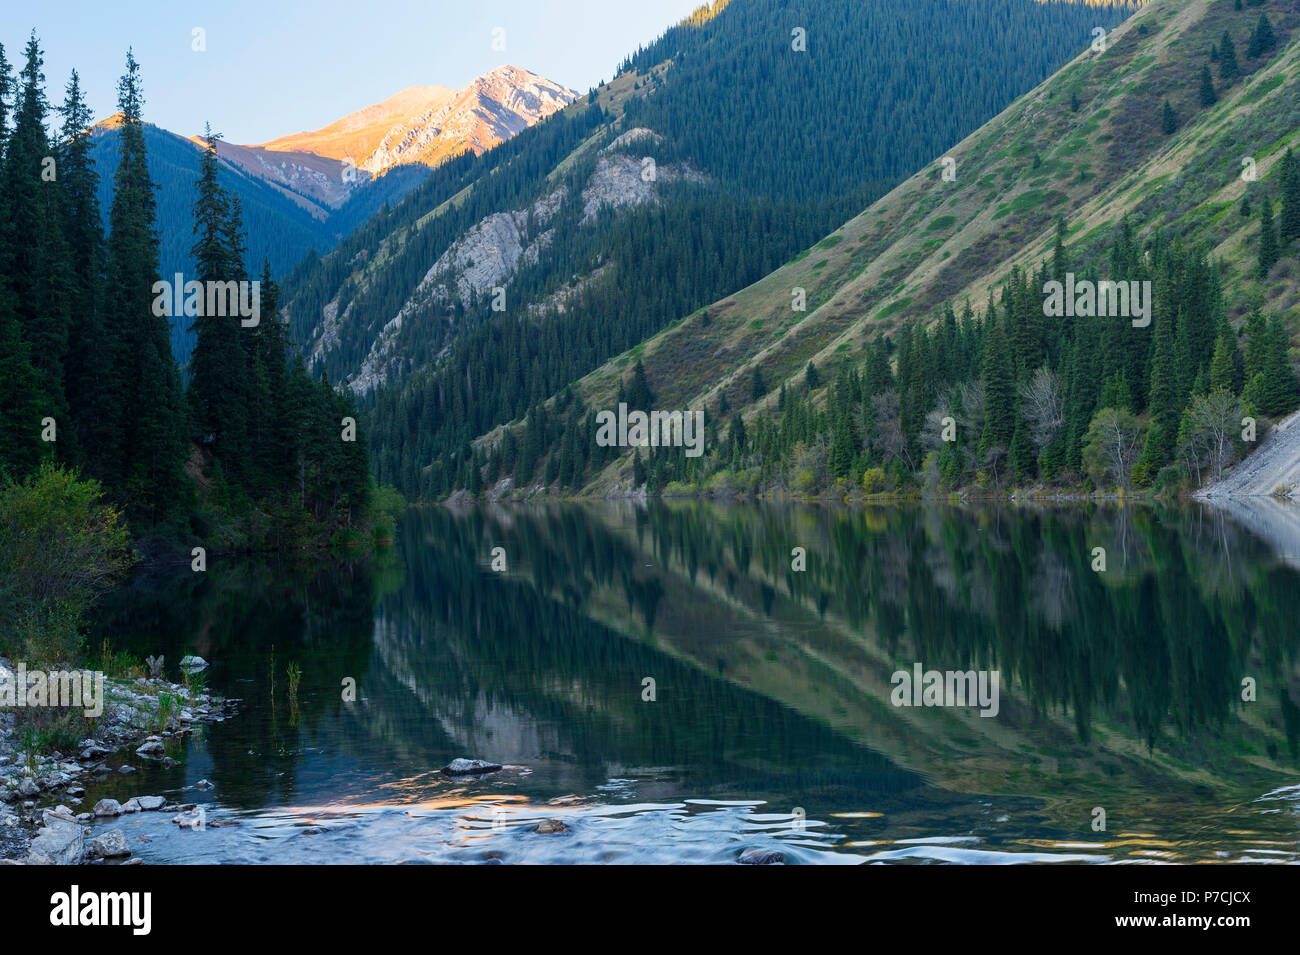 Kolsay lake at early morning, Tien Shan Mountains, Kazakhstan - Stock Image